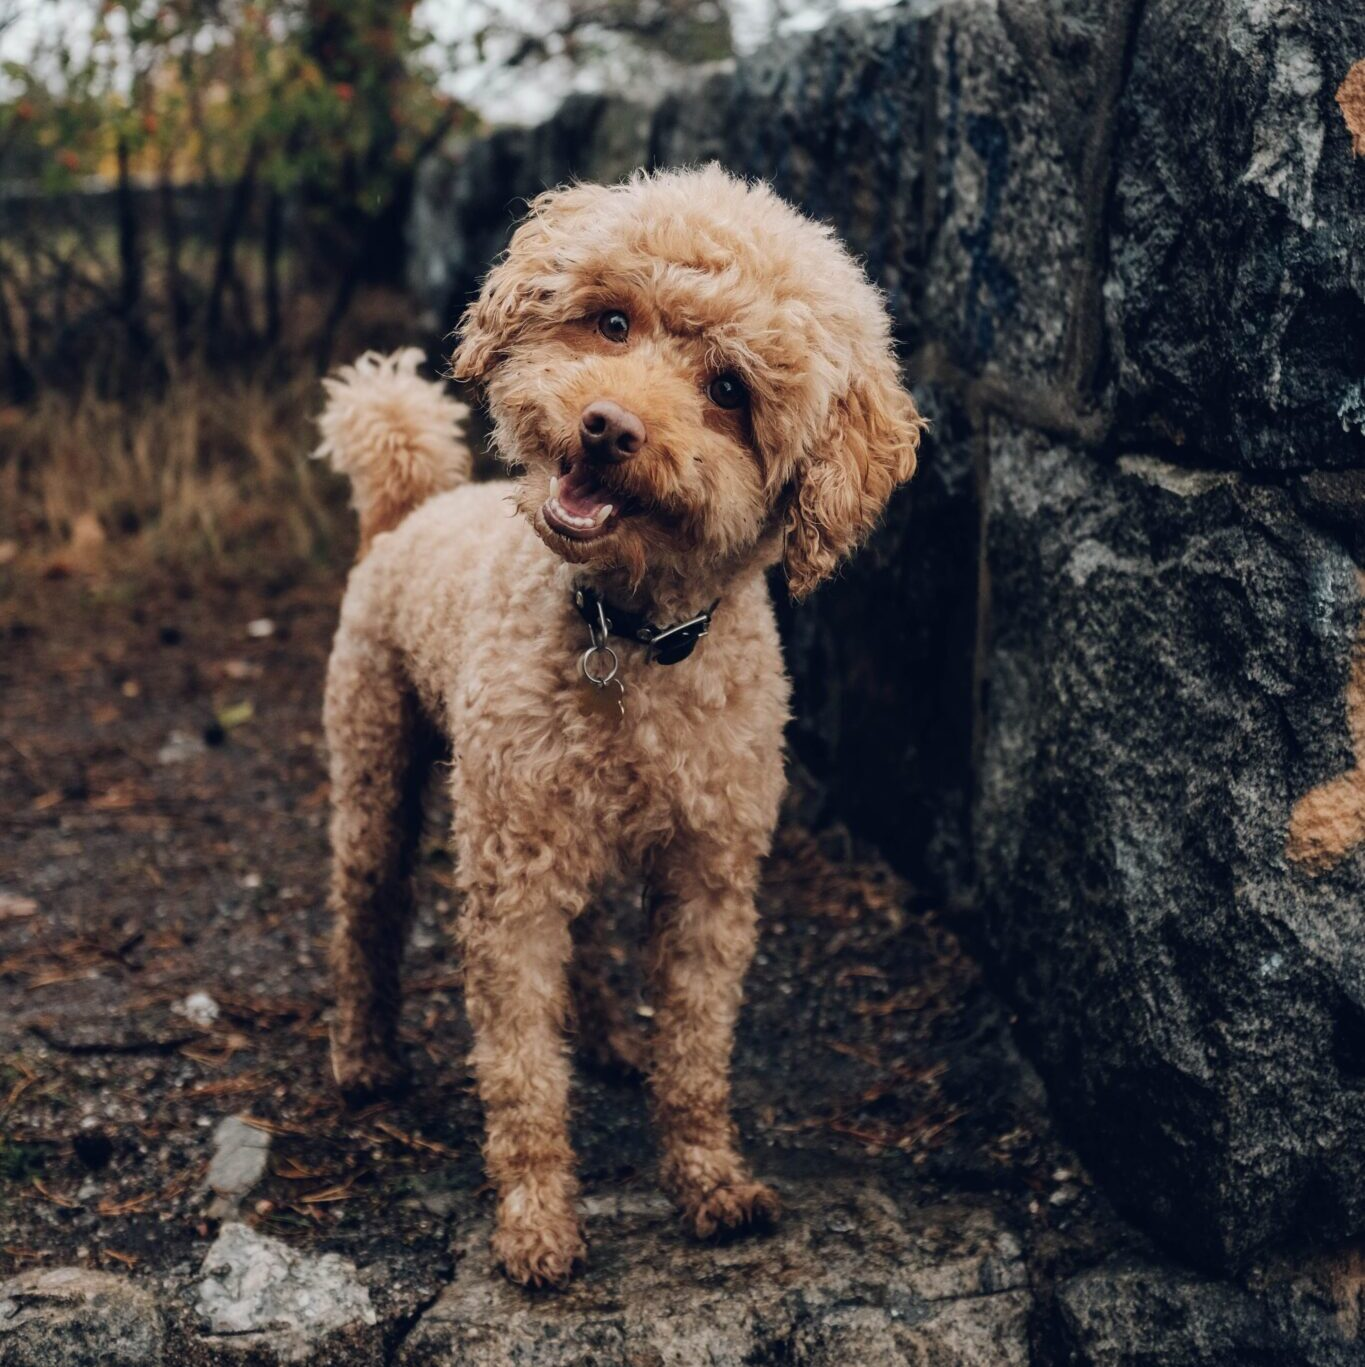 Poodle Mix Dog in Yard